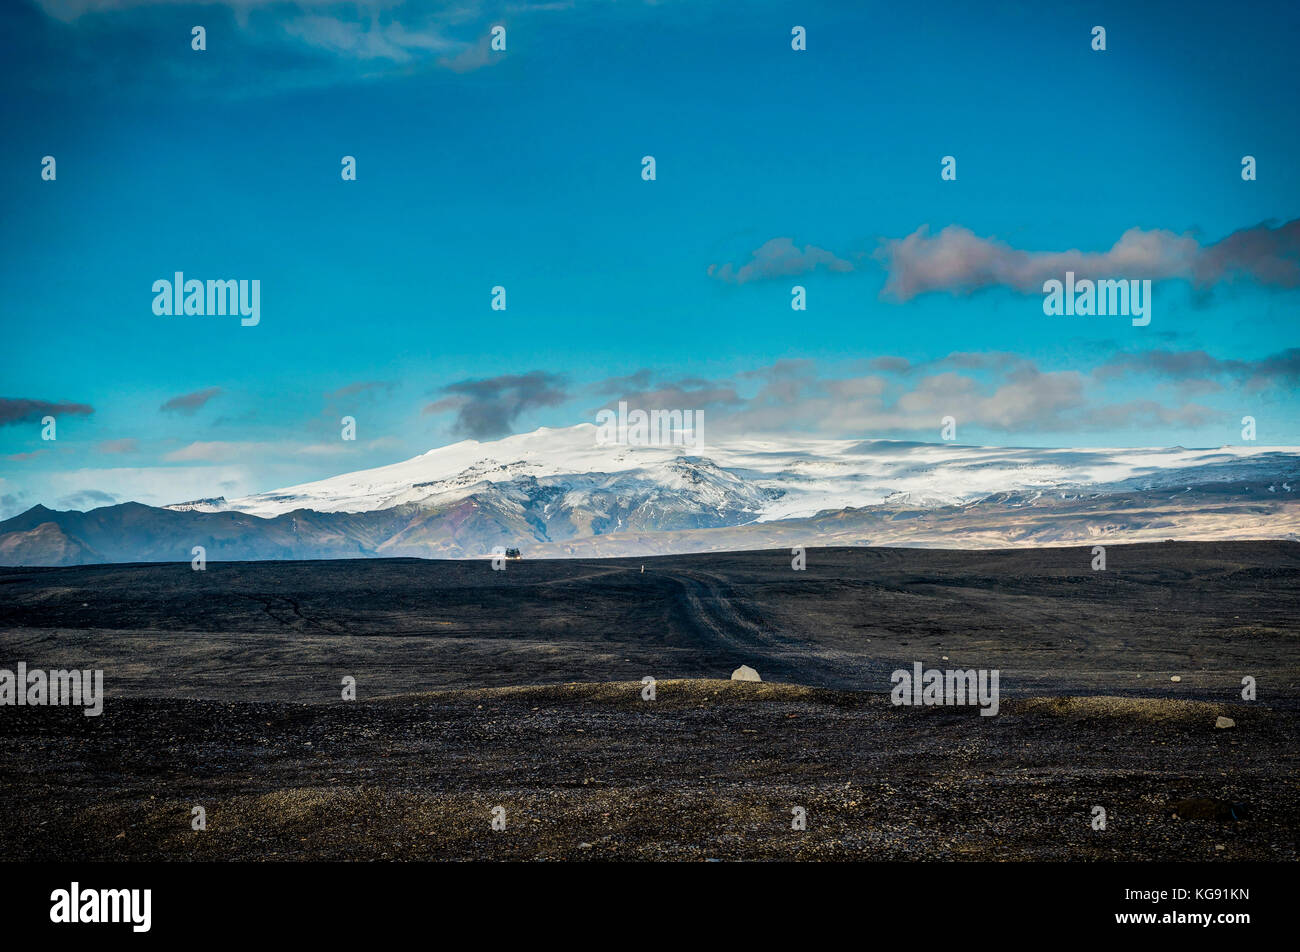 View across black beach towards eyjafjallajokull volcano - Stock Image